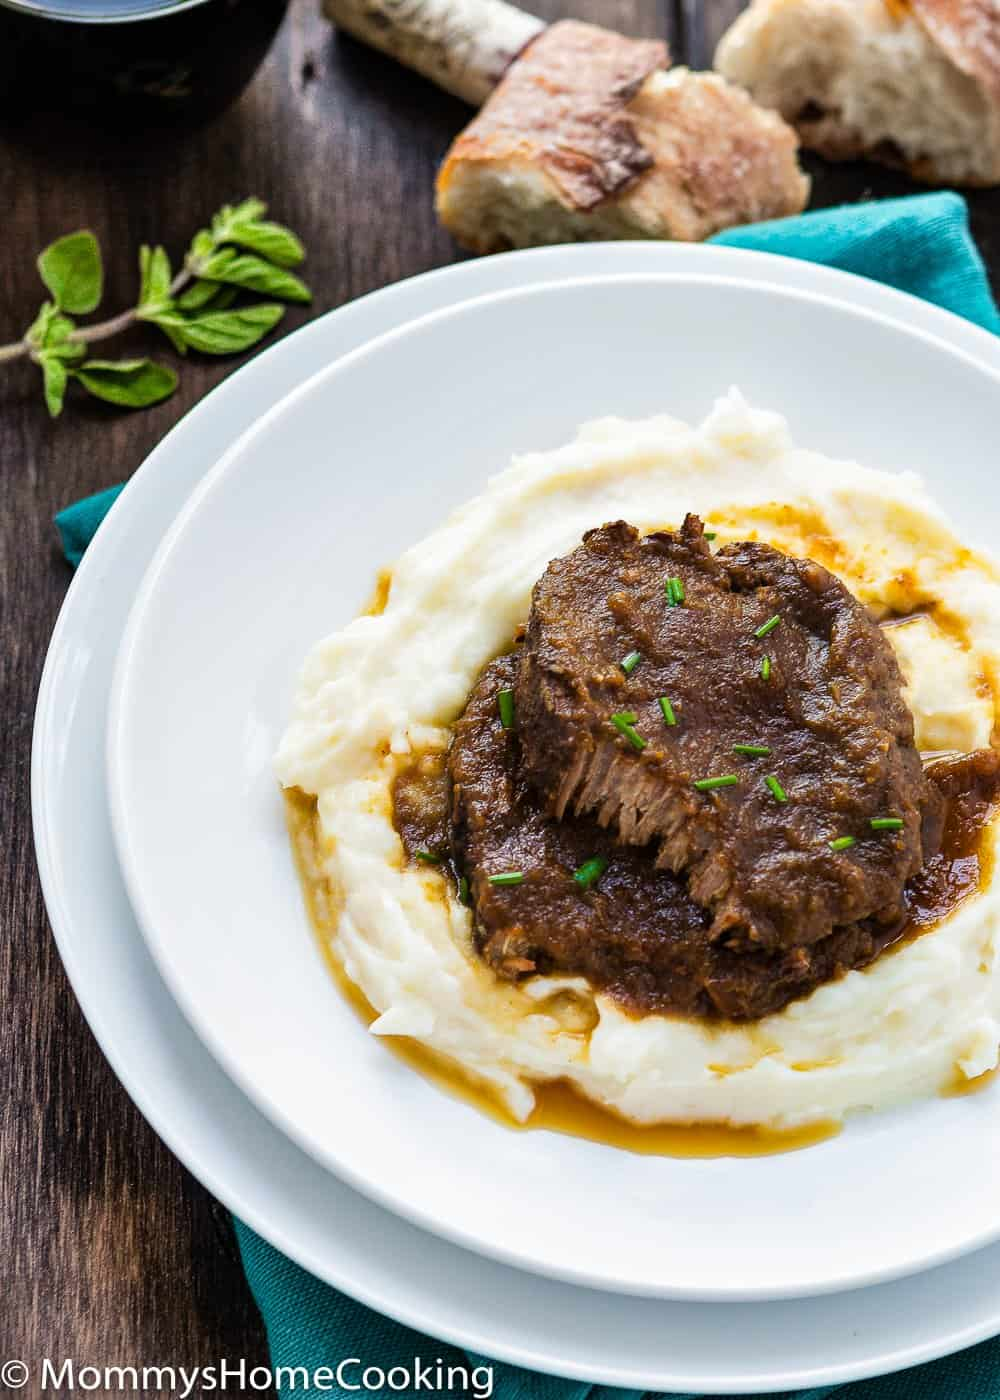 Venezuelan Asado Negro in a white plate with mashed potatoes  and garnished with chives